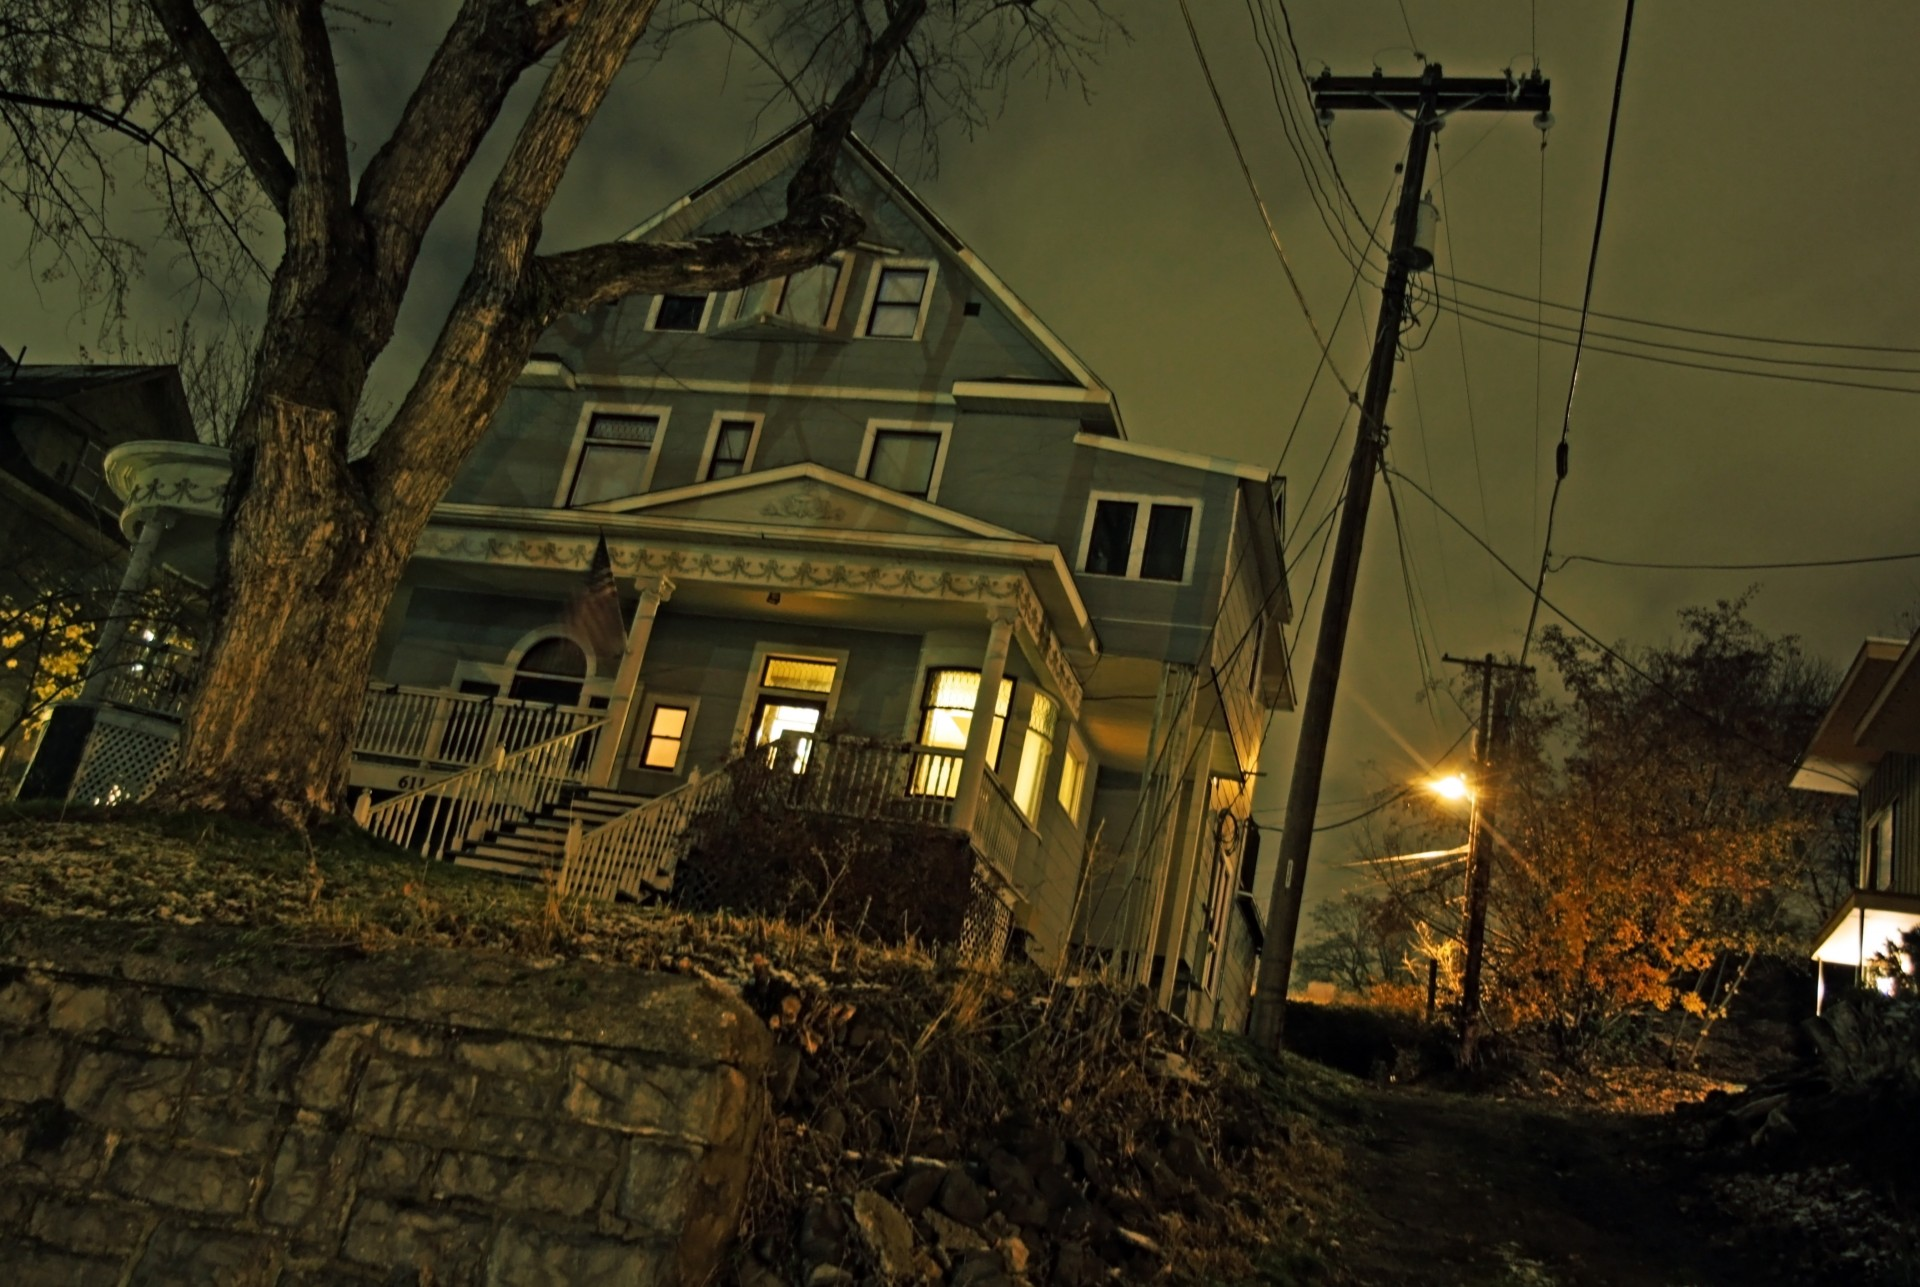 are haunted houses the way to go?